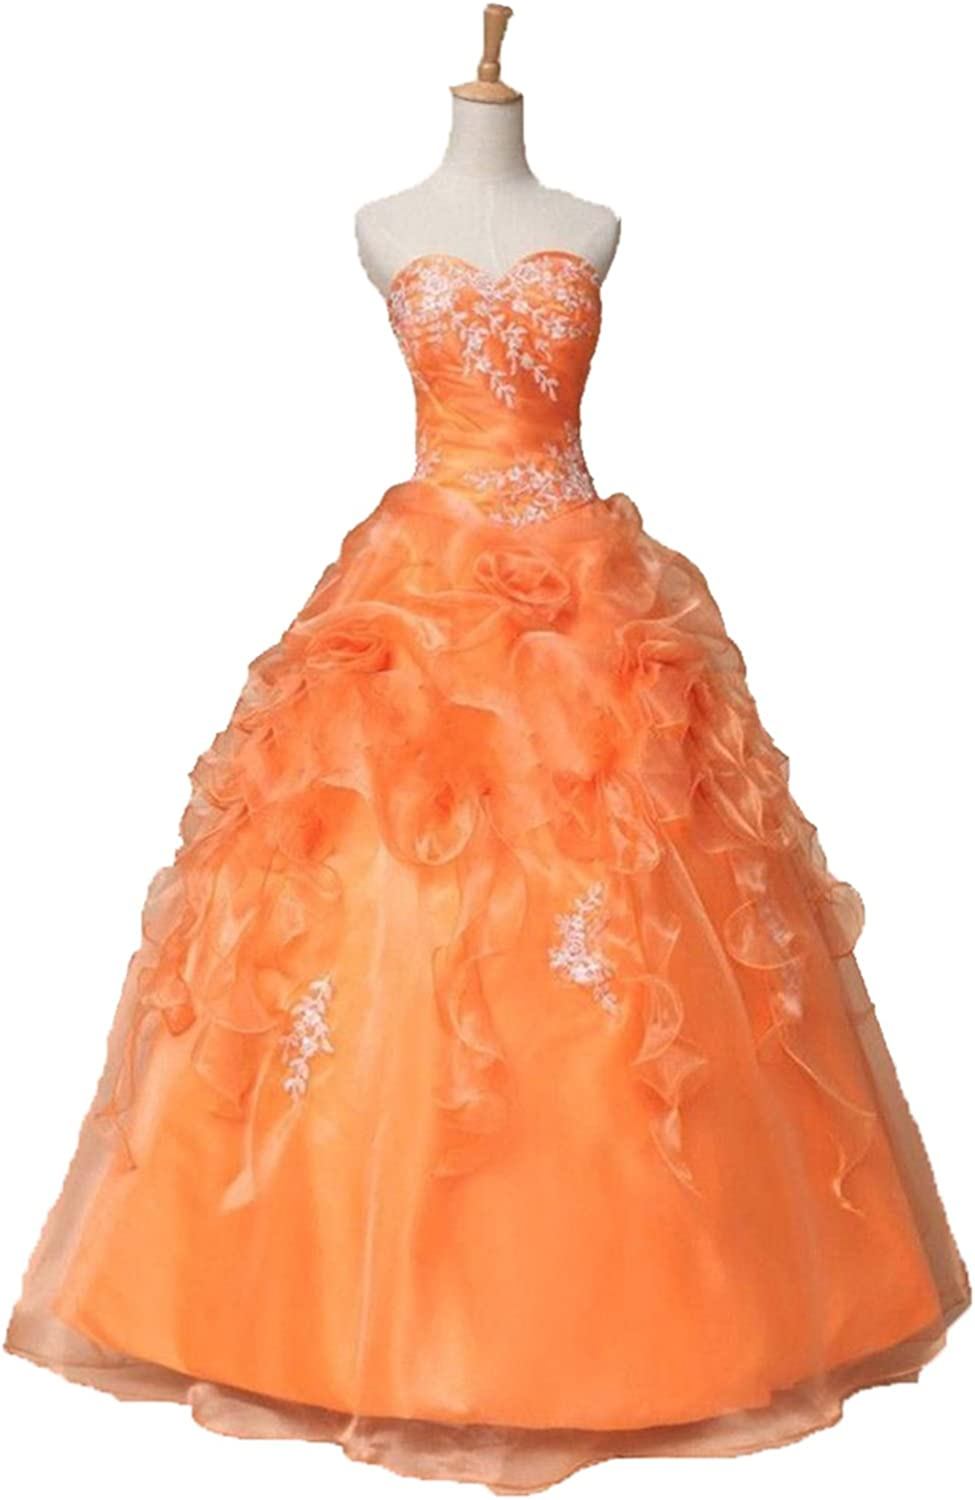 BEALEGAN Lady Women's Stock Lace Quinceanera Dresses For 15 Years Prom Gown